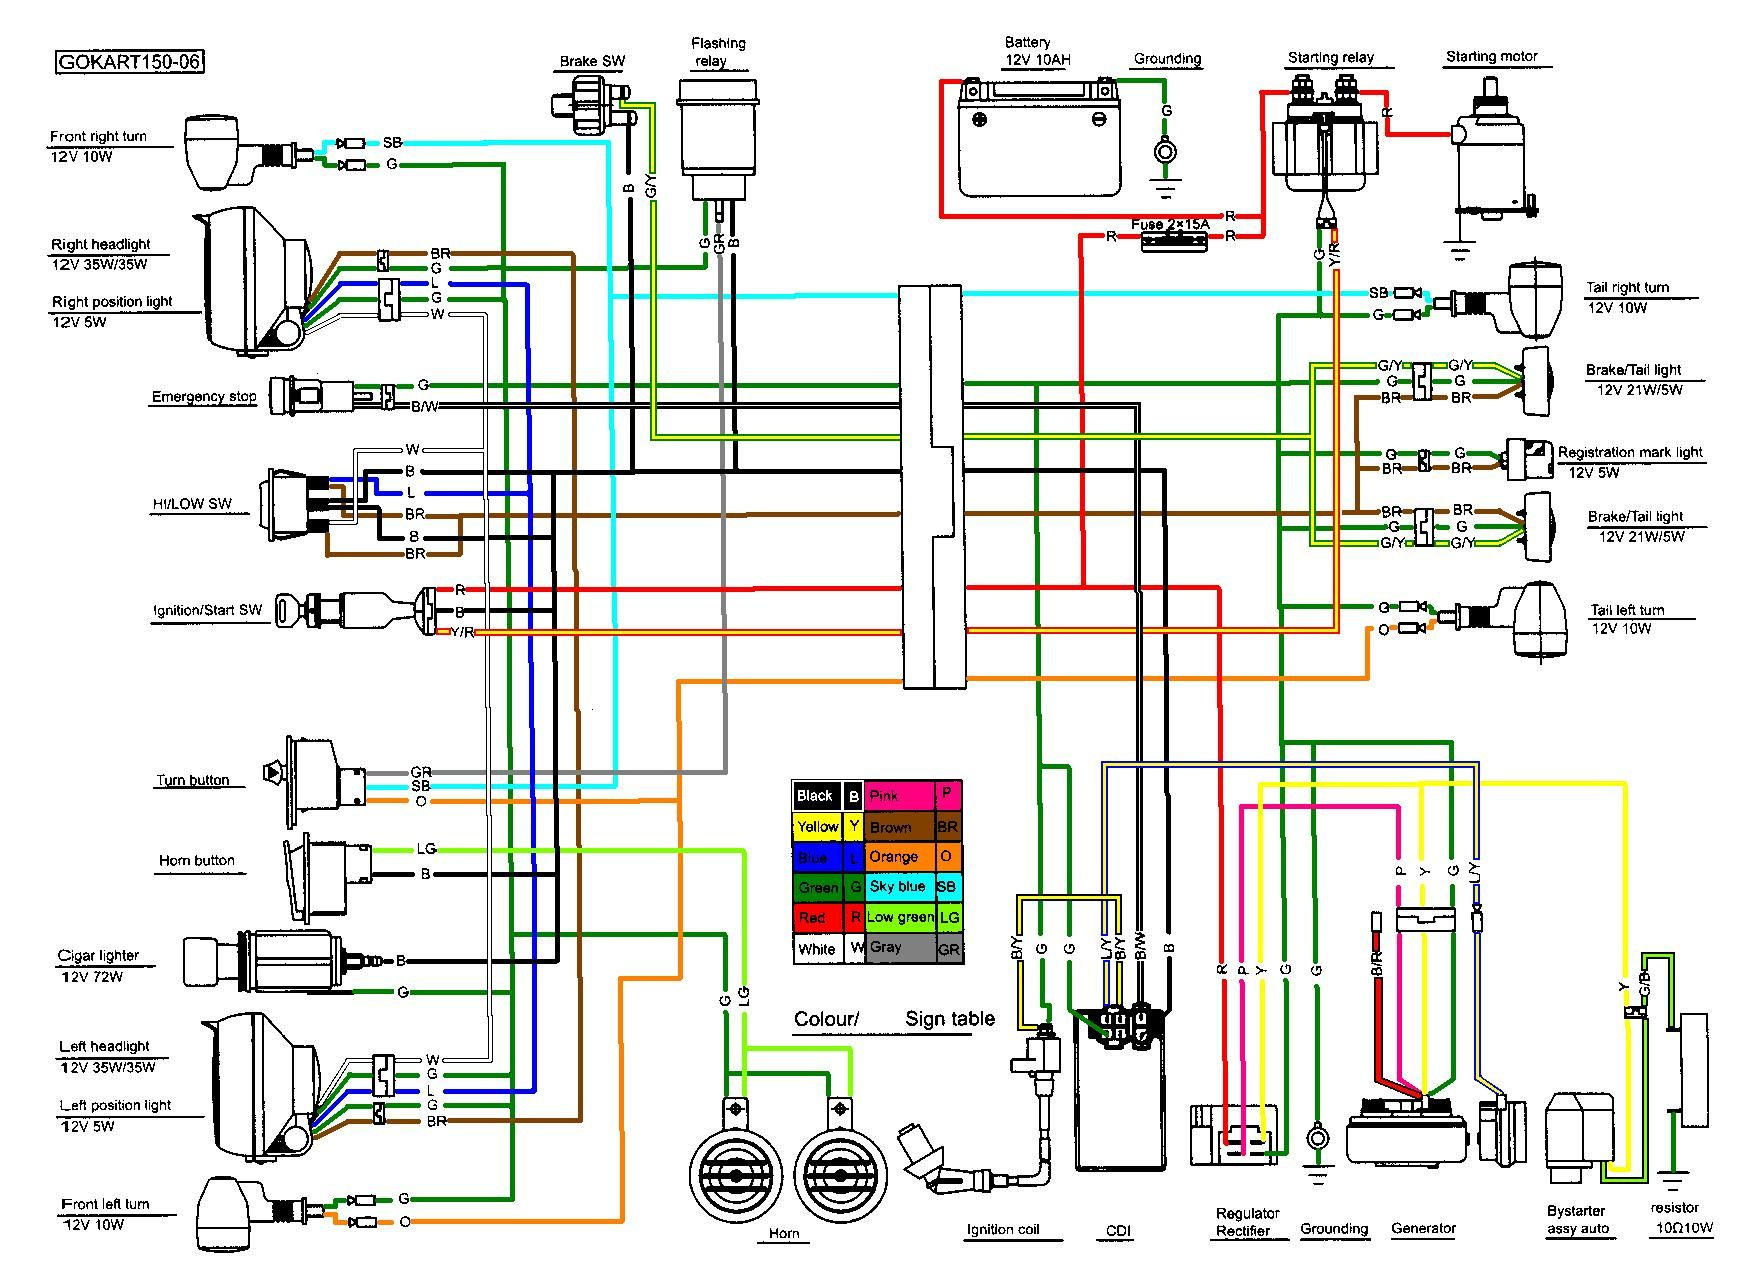 wiring diagram gy6 schematic download gy6 ignition throughout 150ccwiring diagram gy6 schematic download gy6 ignition throughout [ 1748 x 1267 Pixel ]